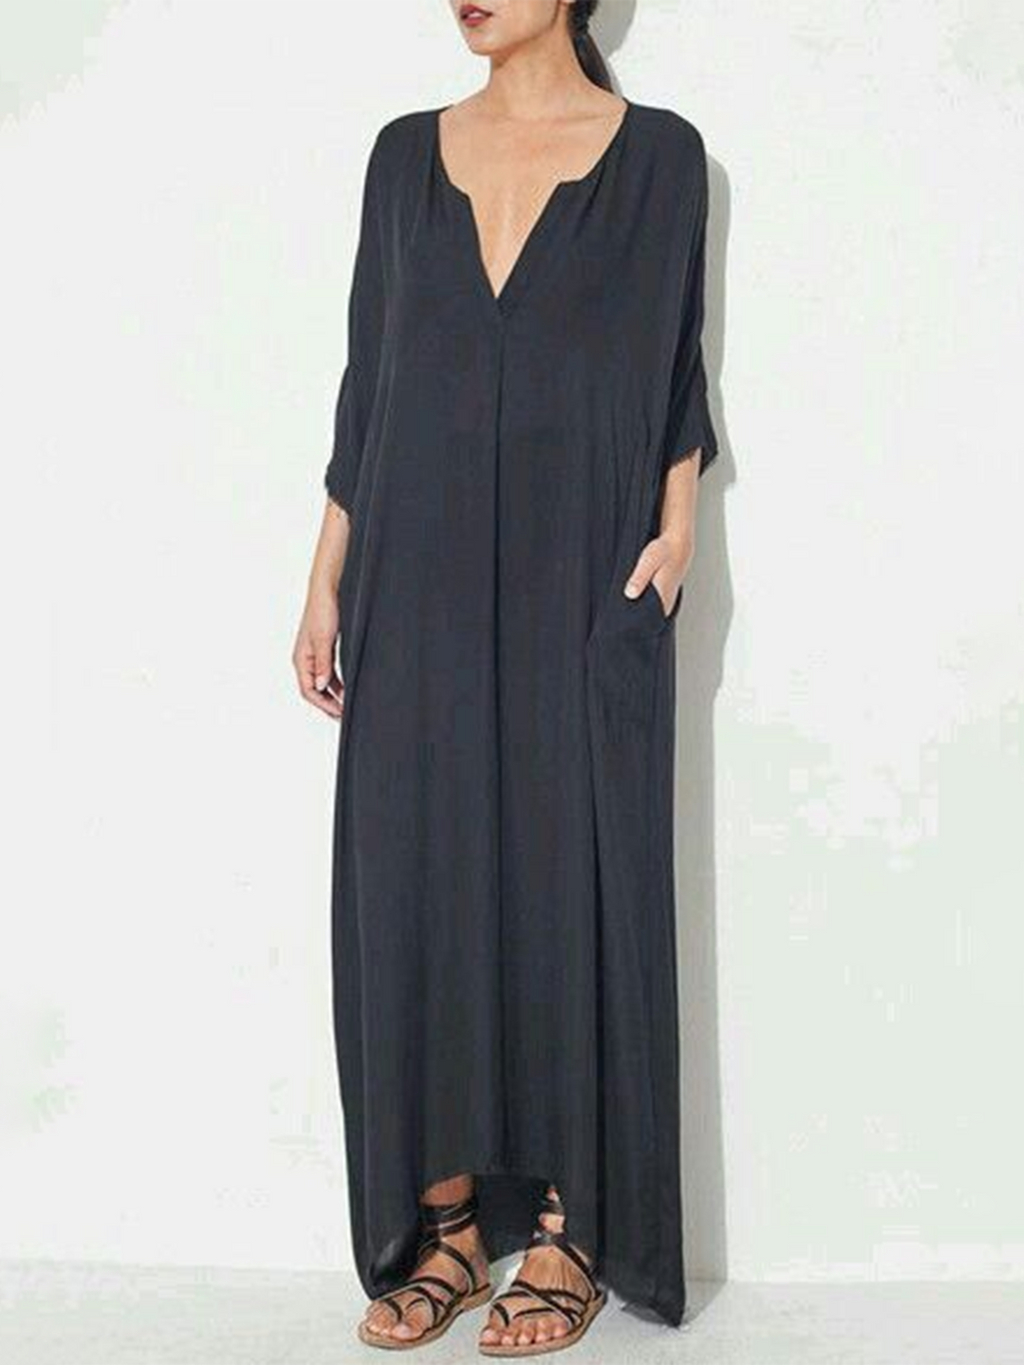 Gray Casual 3/4 Sleeve Plunging neck Asymmetrical Maxi Dress